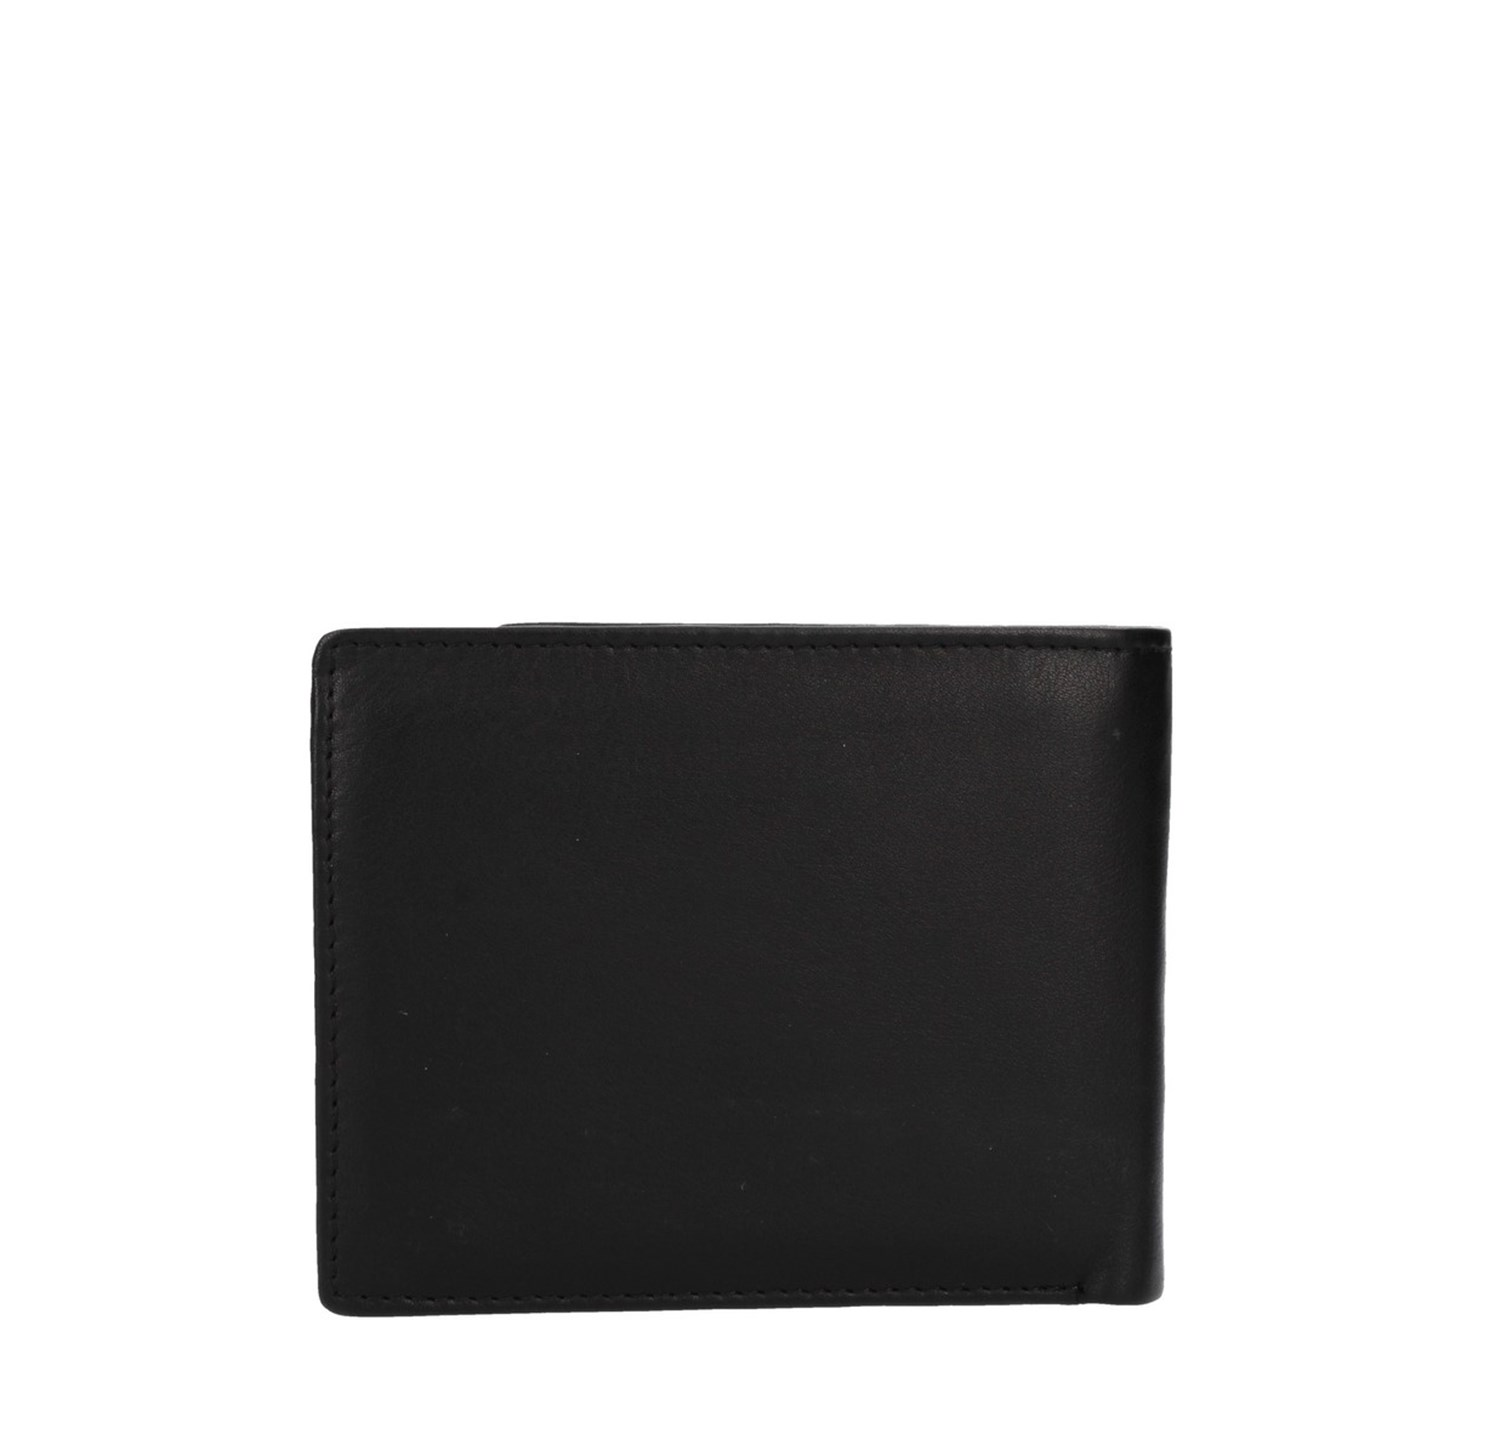 Samsonite Accessories Accessories Wallets BLACK CT9009015